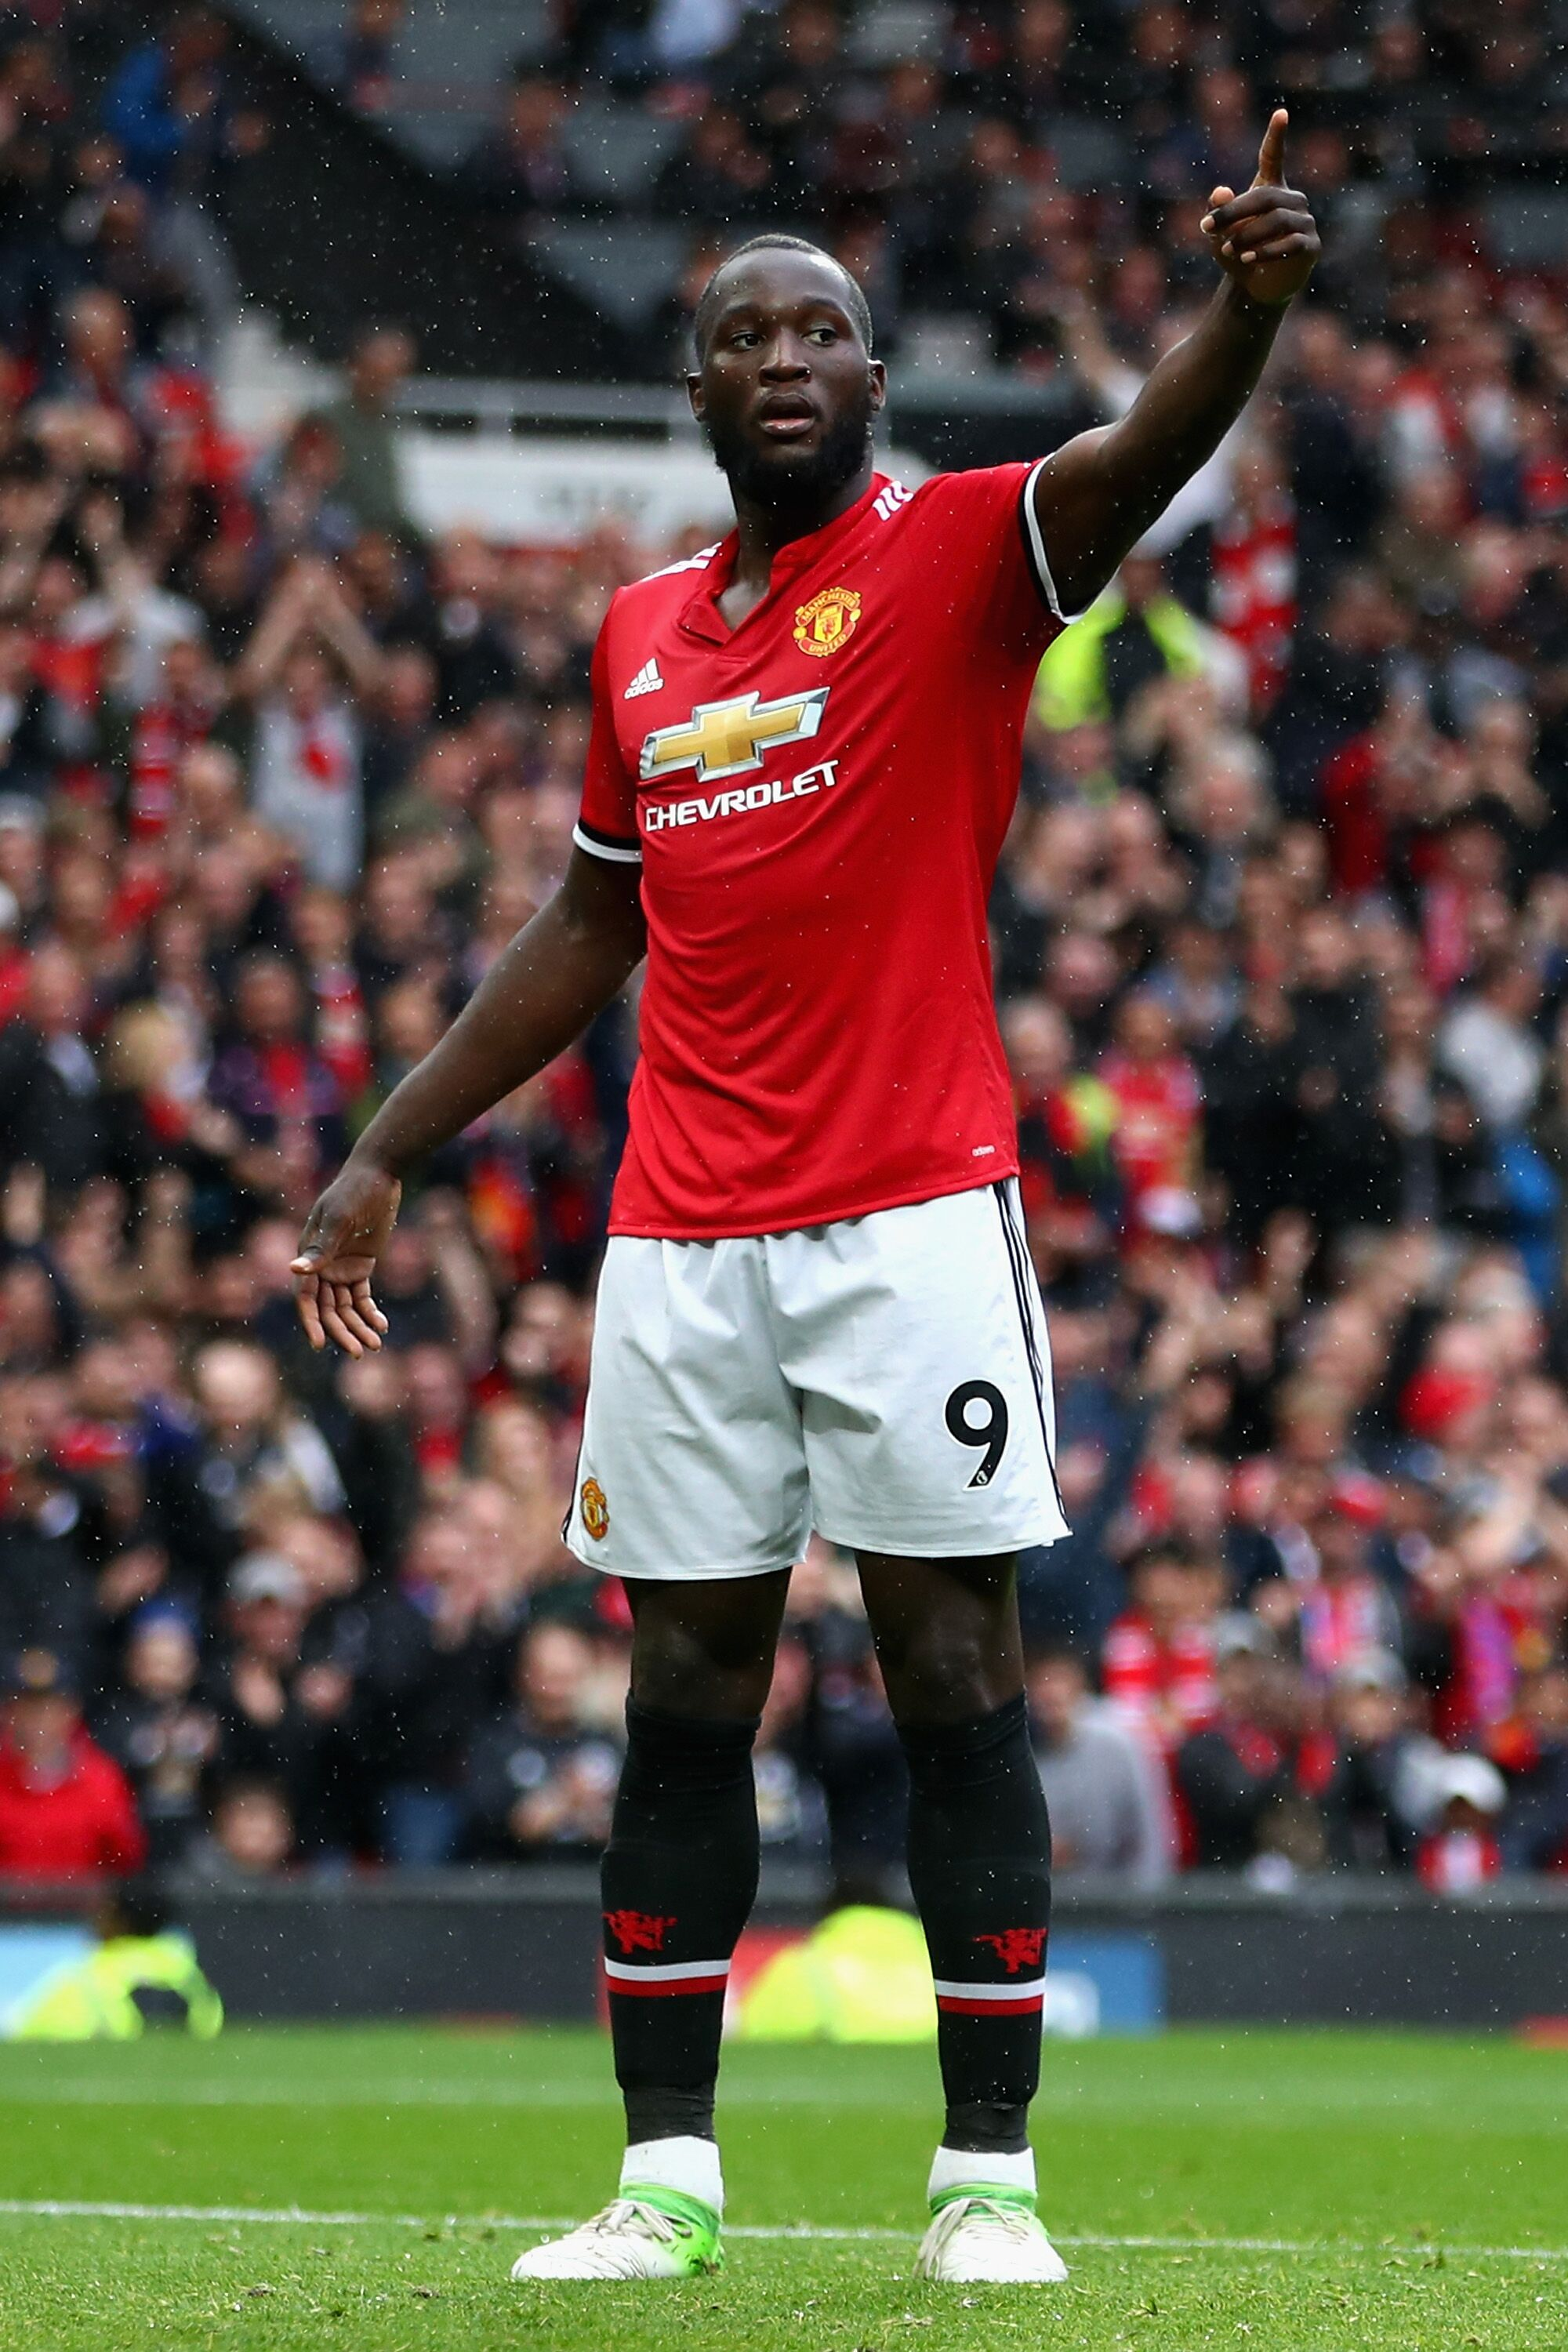 855908510-manchester-united-v-crystal-palace-premier-league.jpg